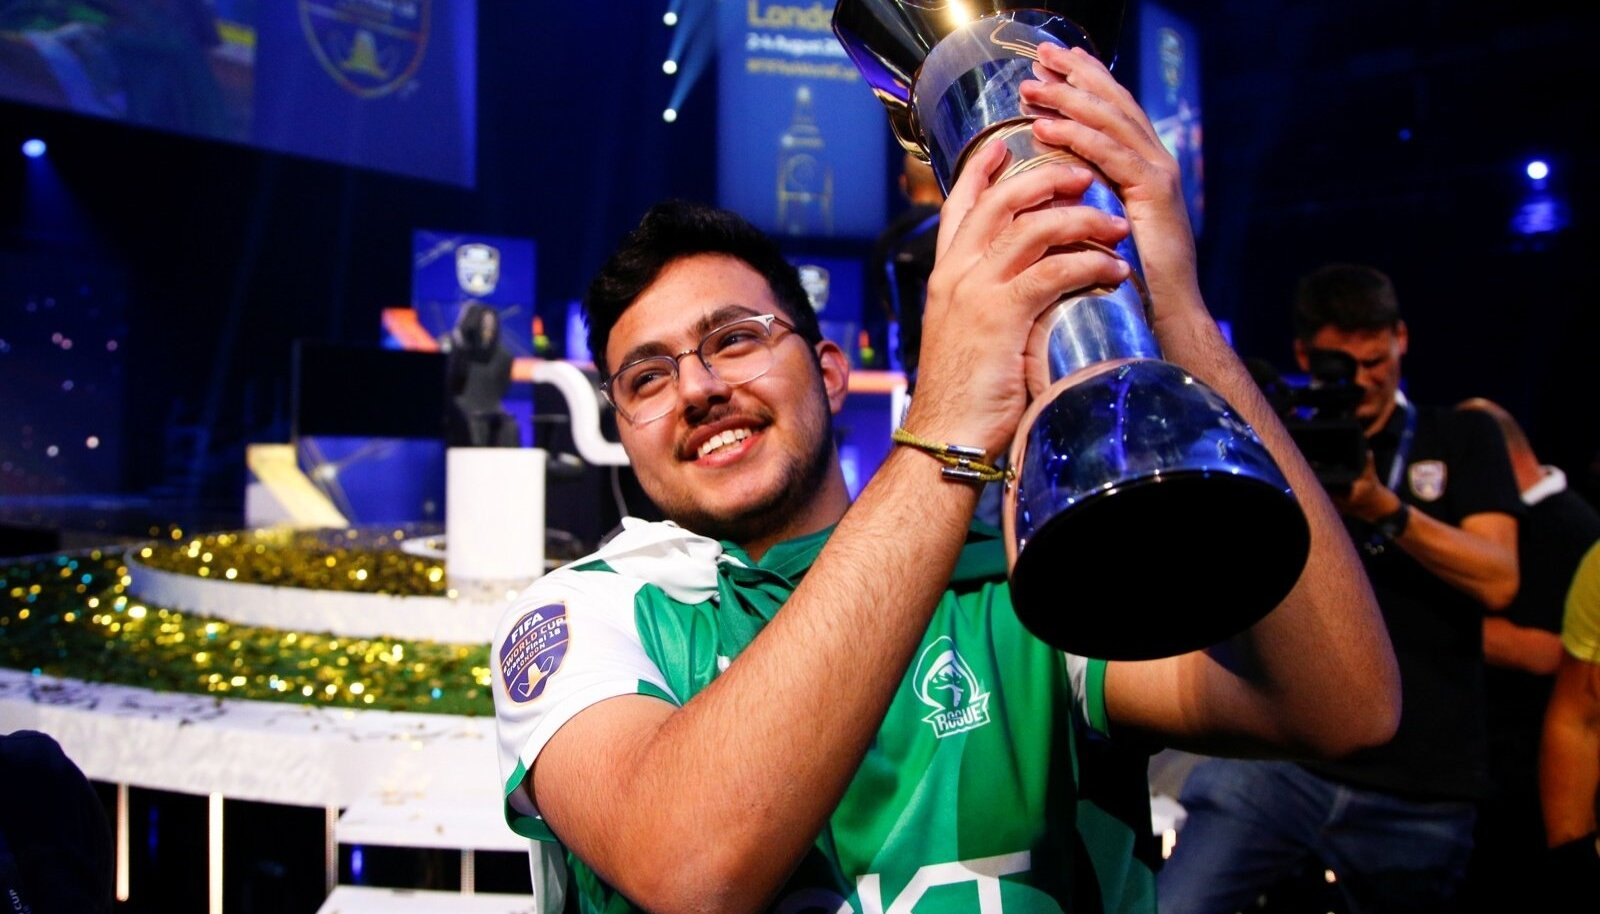 Mosaad 'MSDossary' Aldossary of Saudia Arabia celebrates after defeating Stefano 'Pinna' Pinna of Belgium in the Final of the FIFA eWorld Cup 2018 at The O2 Arena in London